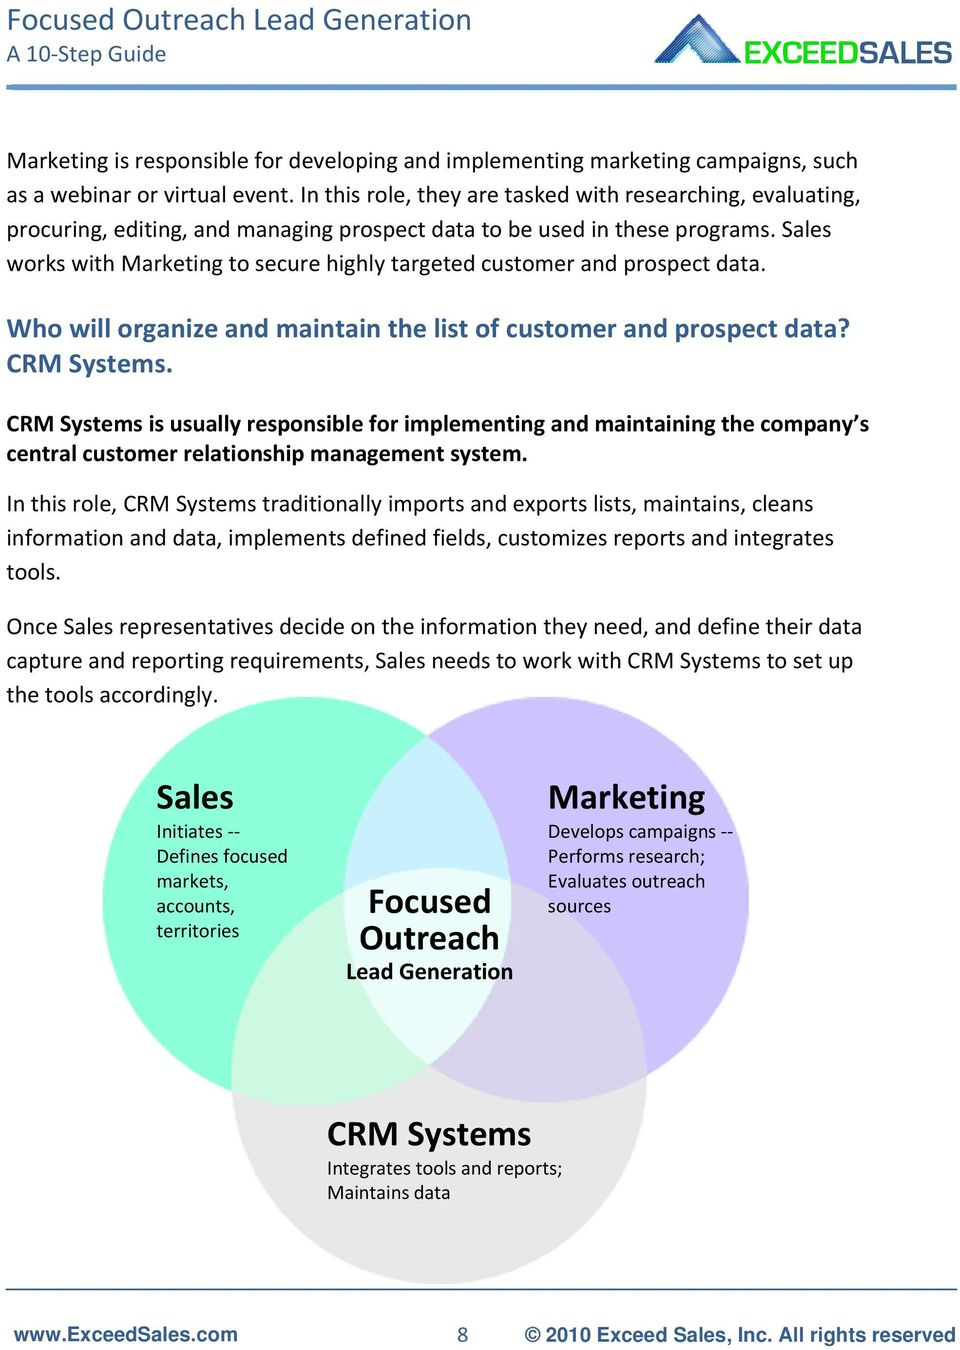 Sales works with Marketing to secure highly targeted customer and prospect data. Who will organize and maintain the list of customer and prospect data? CRM Systems.